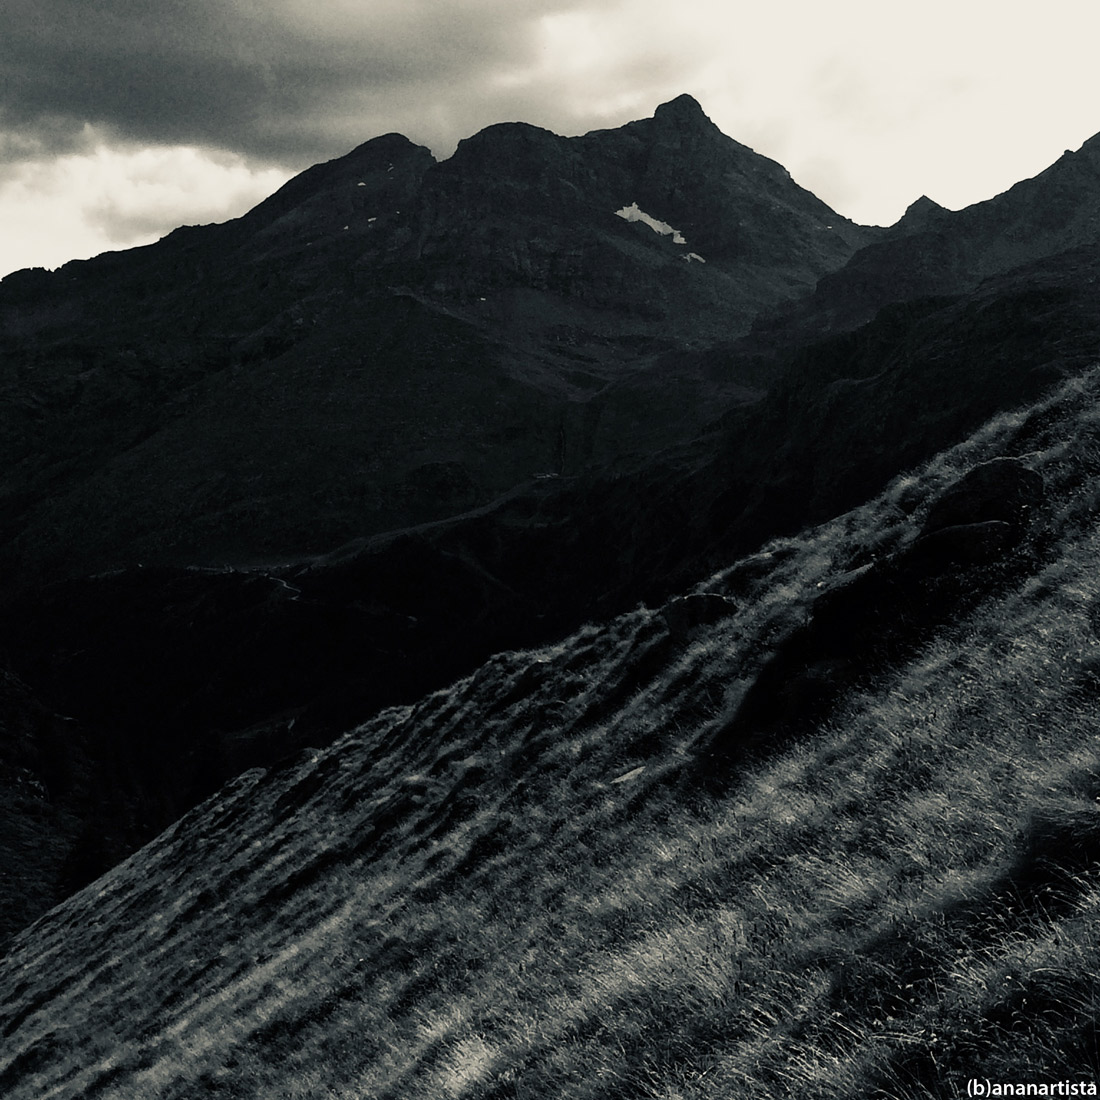 pastoral poetry alps landscape black and white photography by (b)ananartista sbuff art